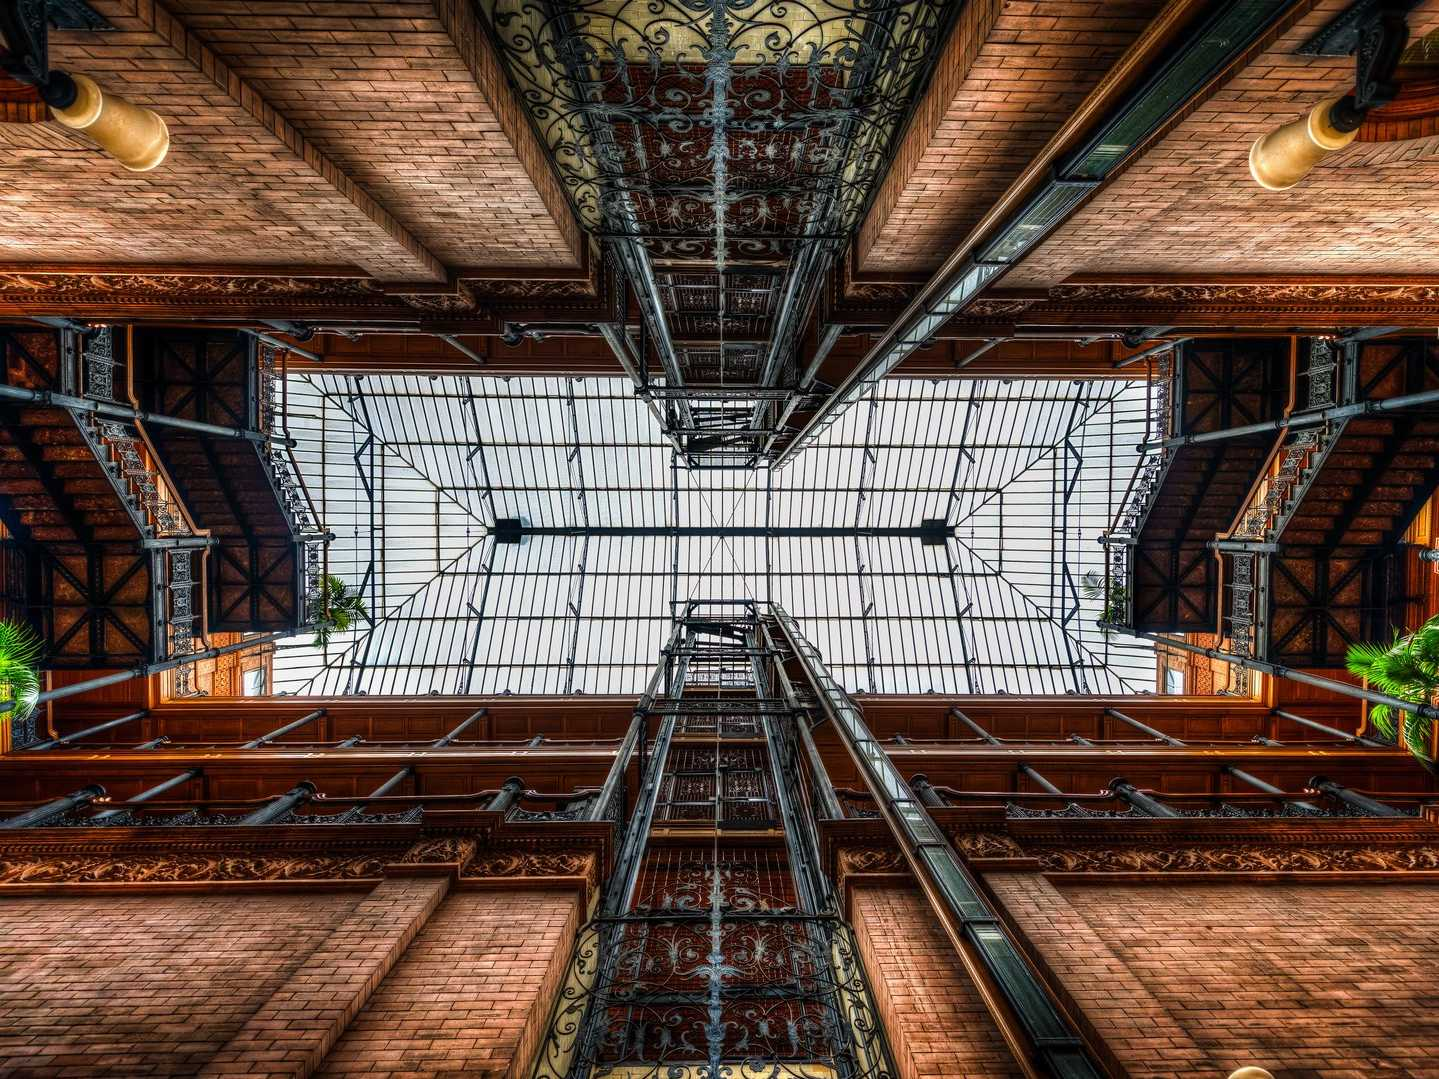 The Bradbury Building is the oldest landmarked building in Los Angeles, constructed back in 1893.